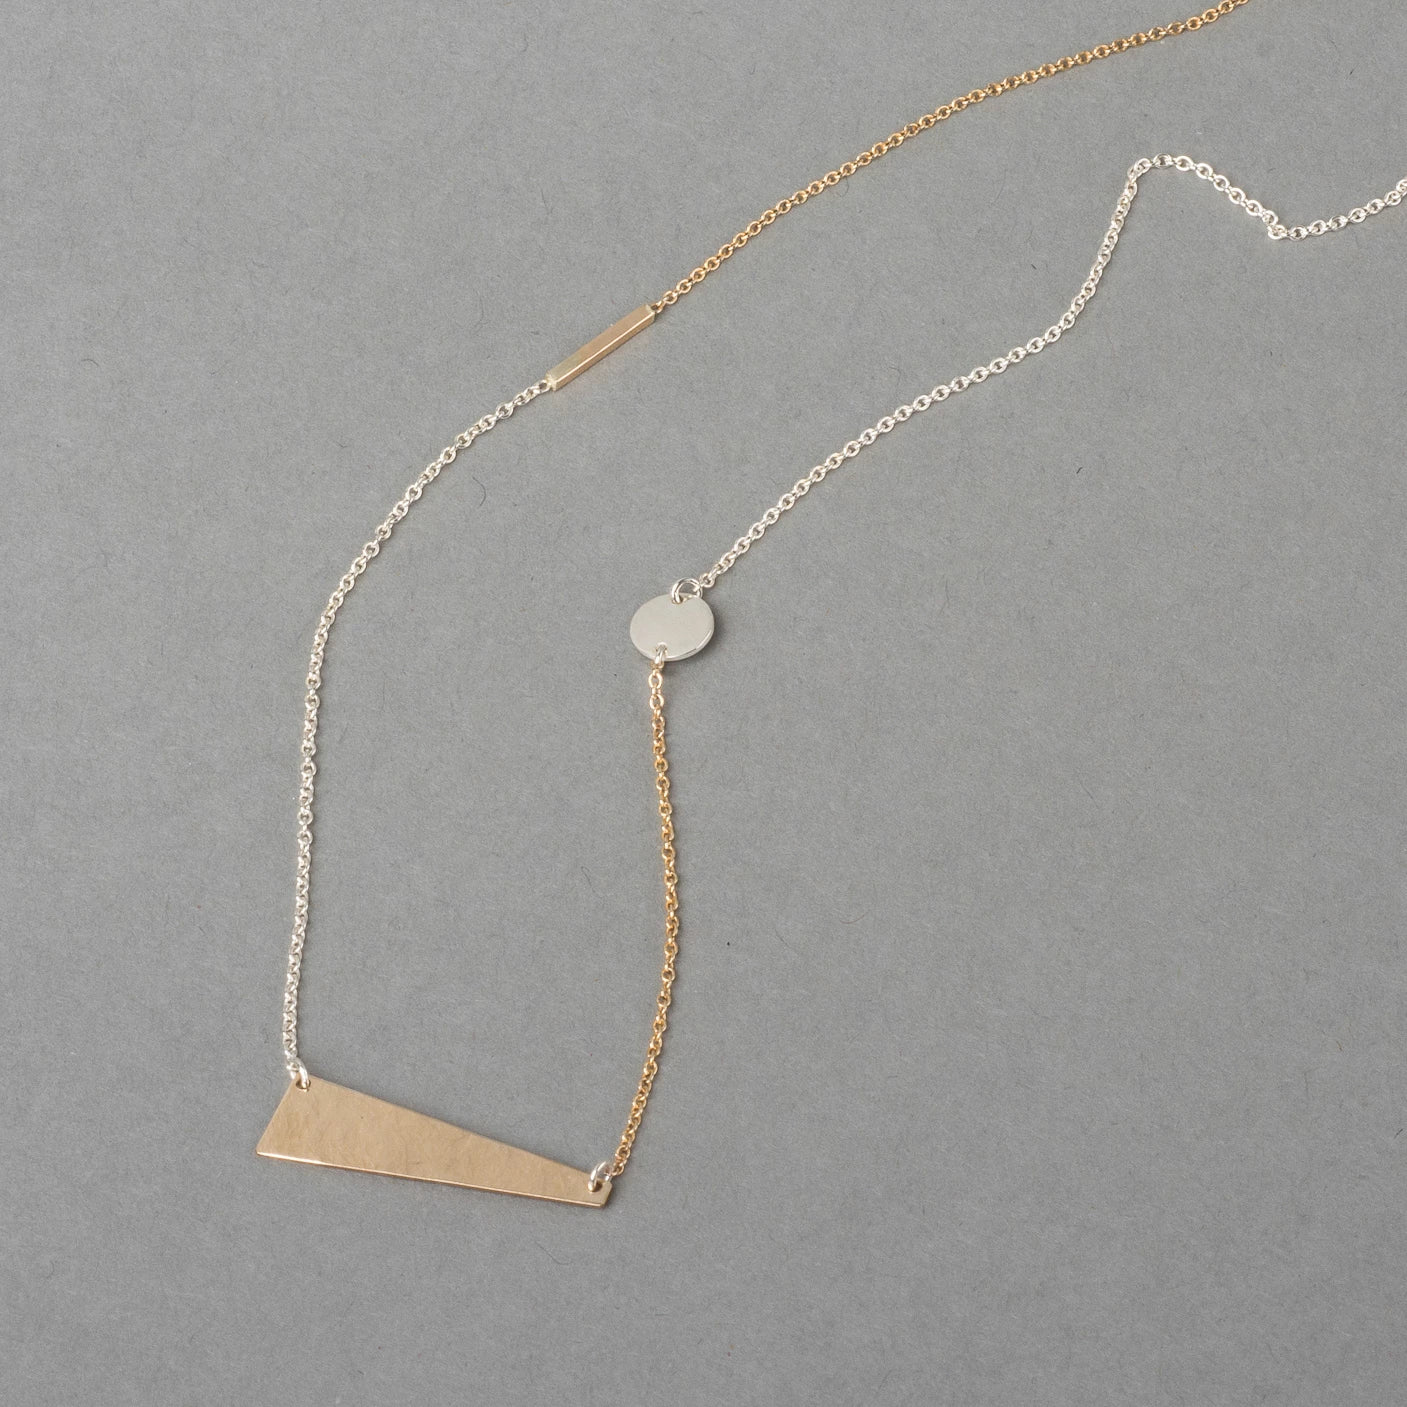 ZILKER TWO-TONE NECKLACE